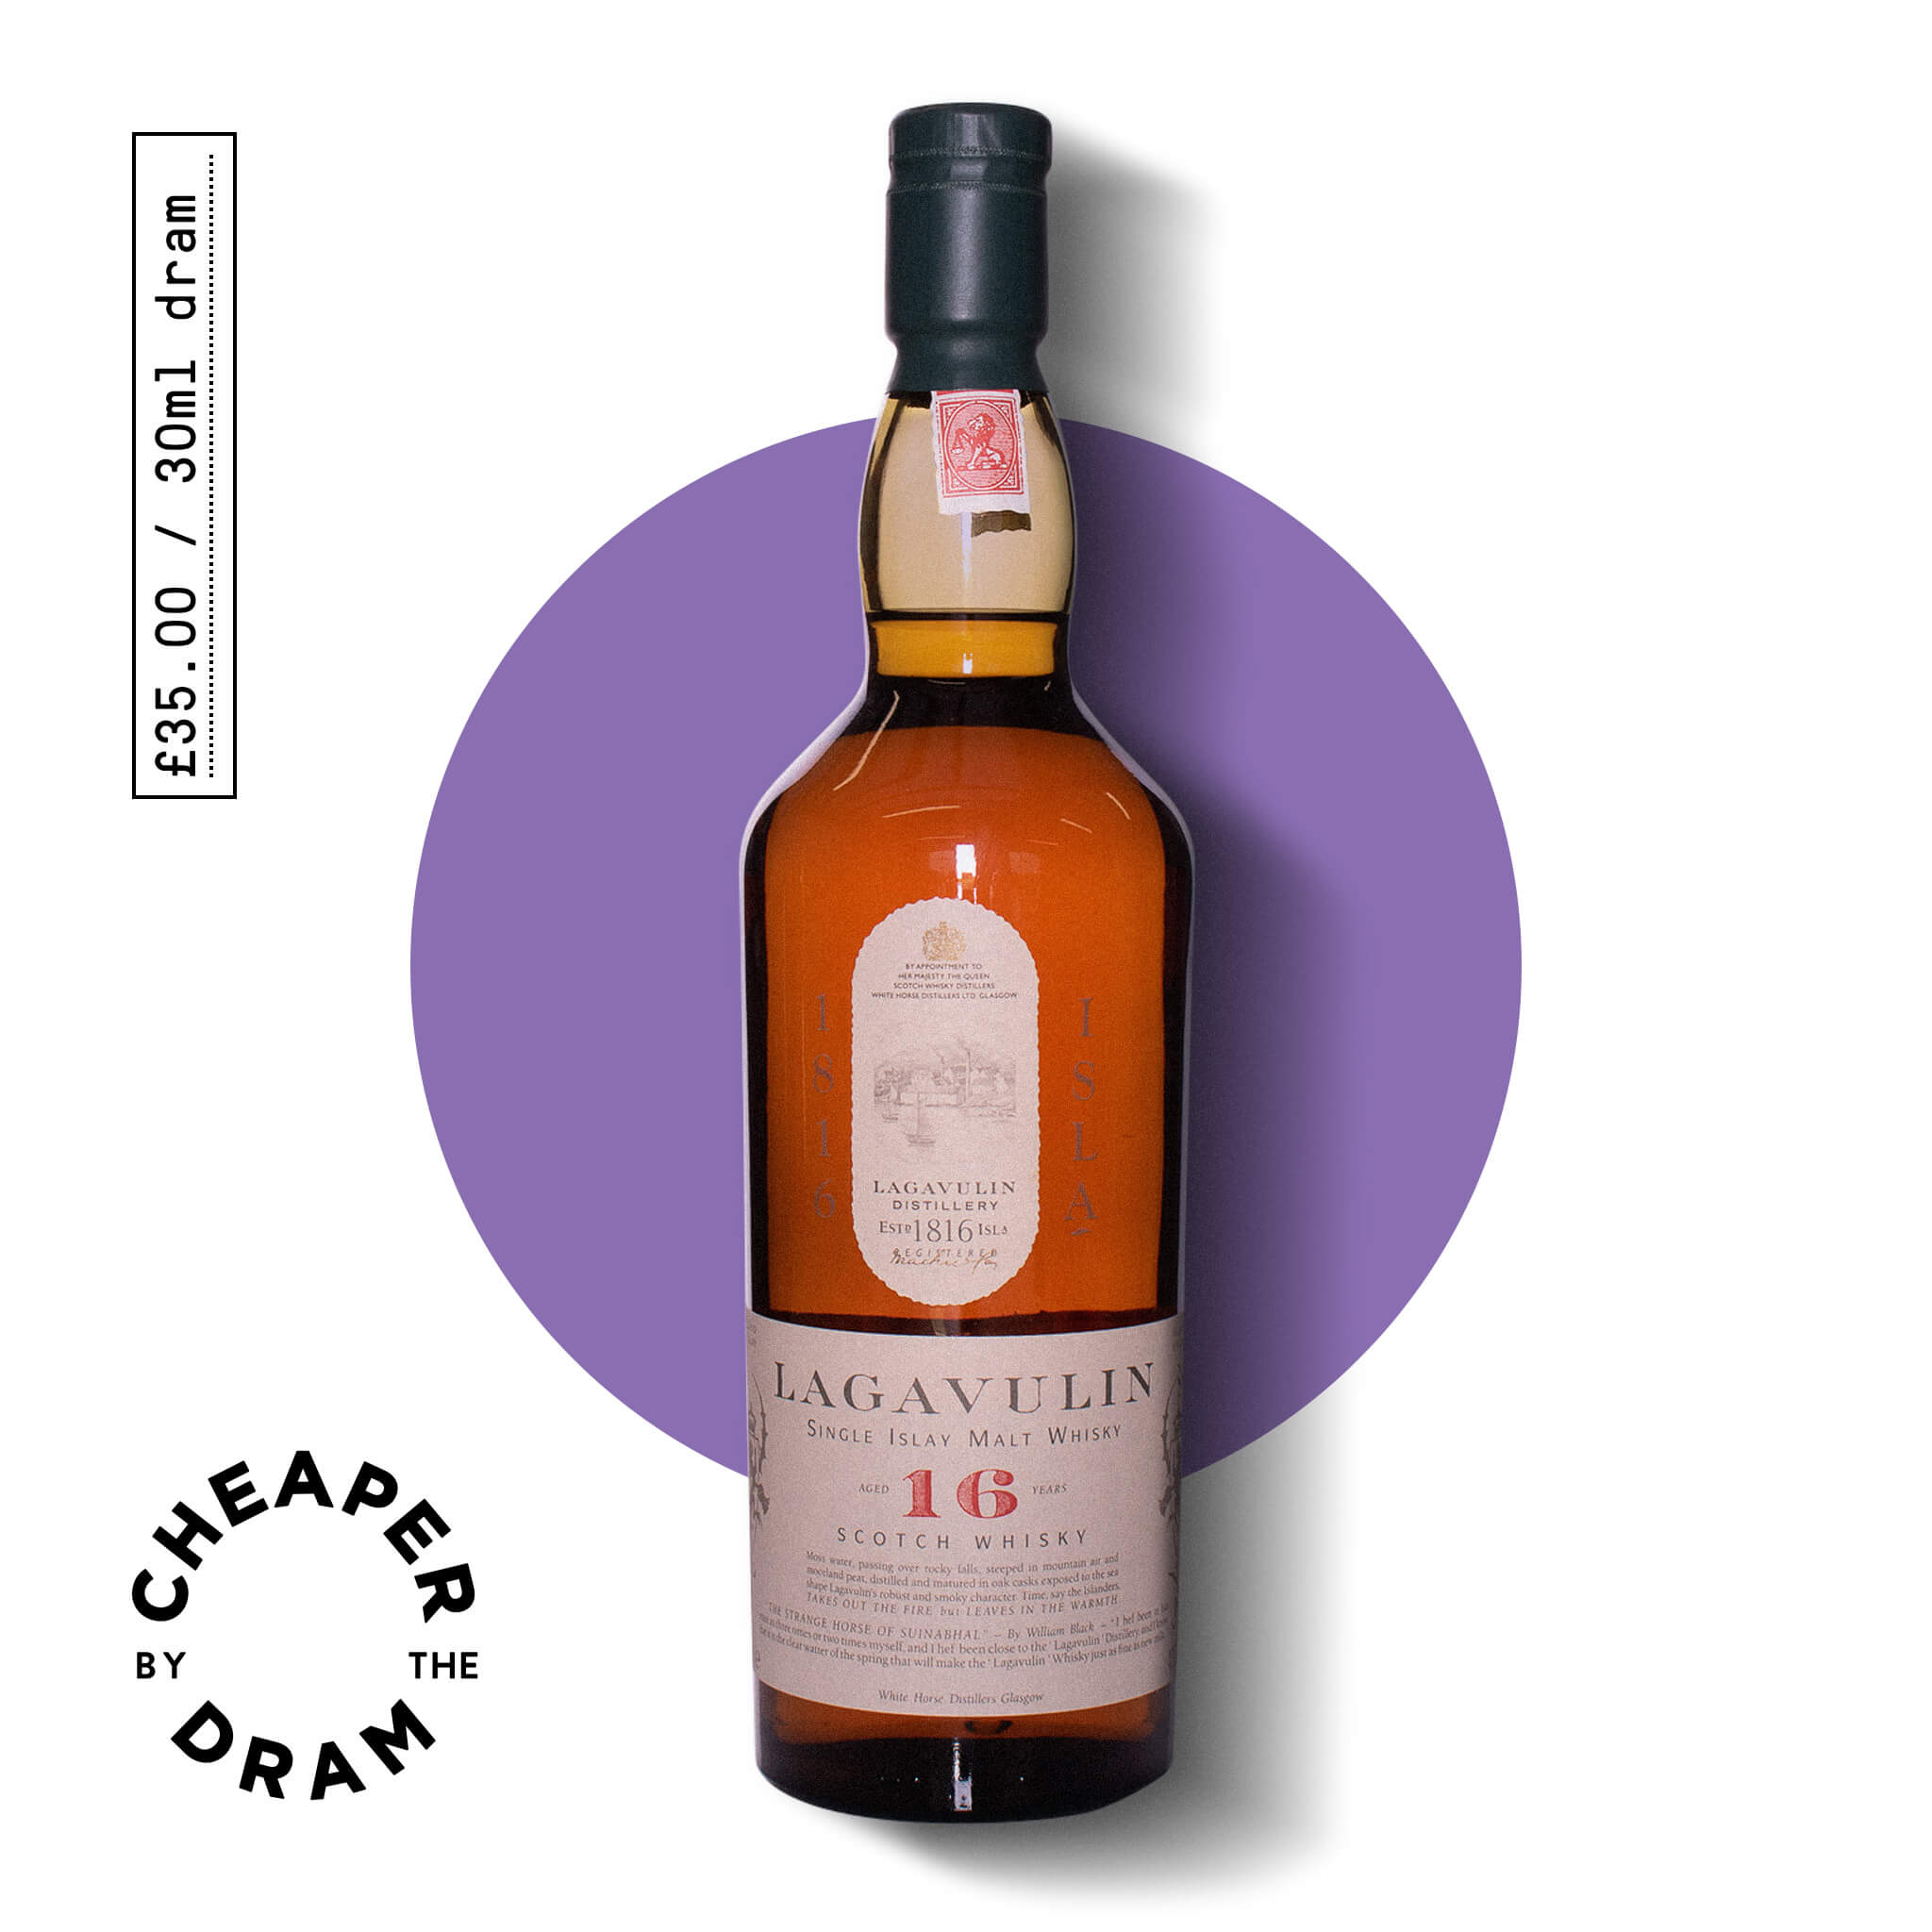 A bottle of CBTD NO.24 Lagavulin 16 year old White Horse distillers